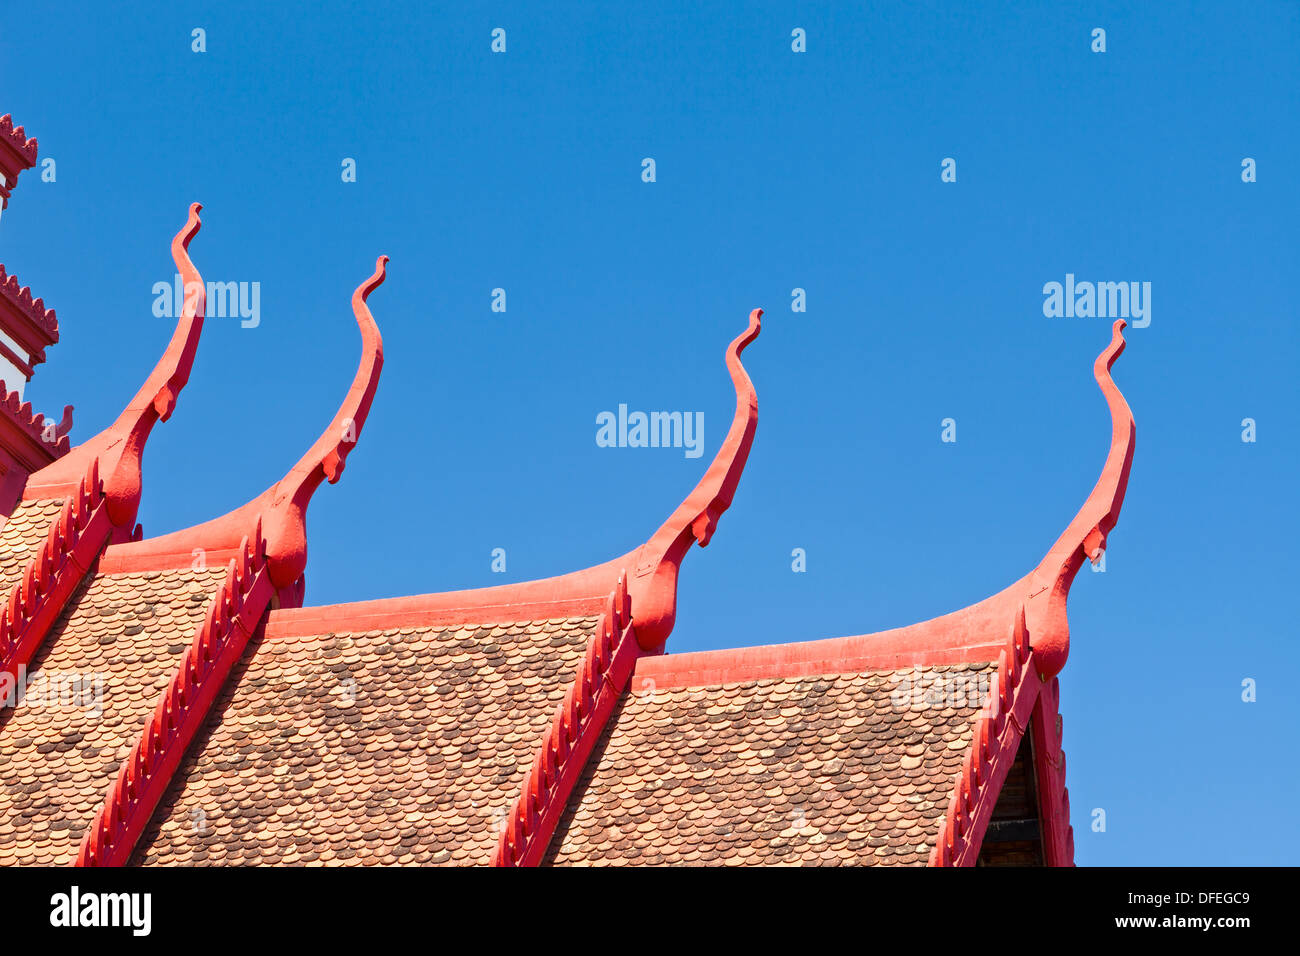 Detail of the multi tiered roof of the national museum building in Phnom Penh, Cambodia - Stock Image